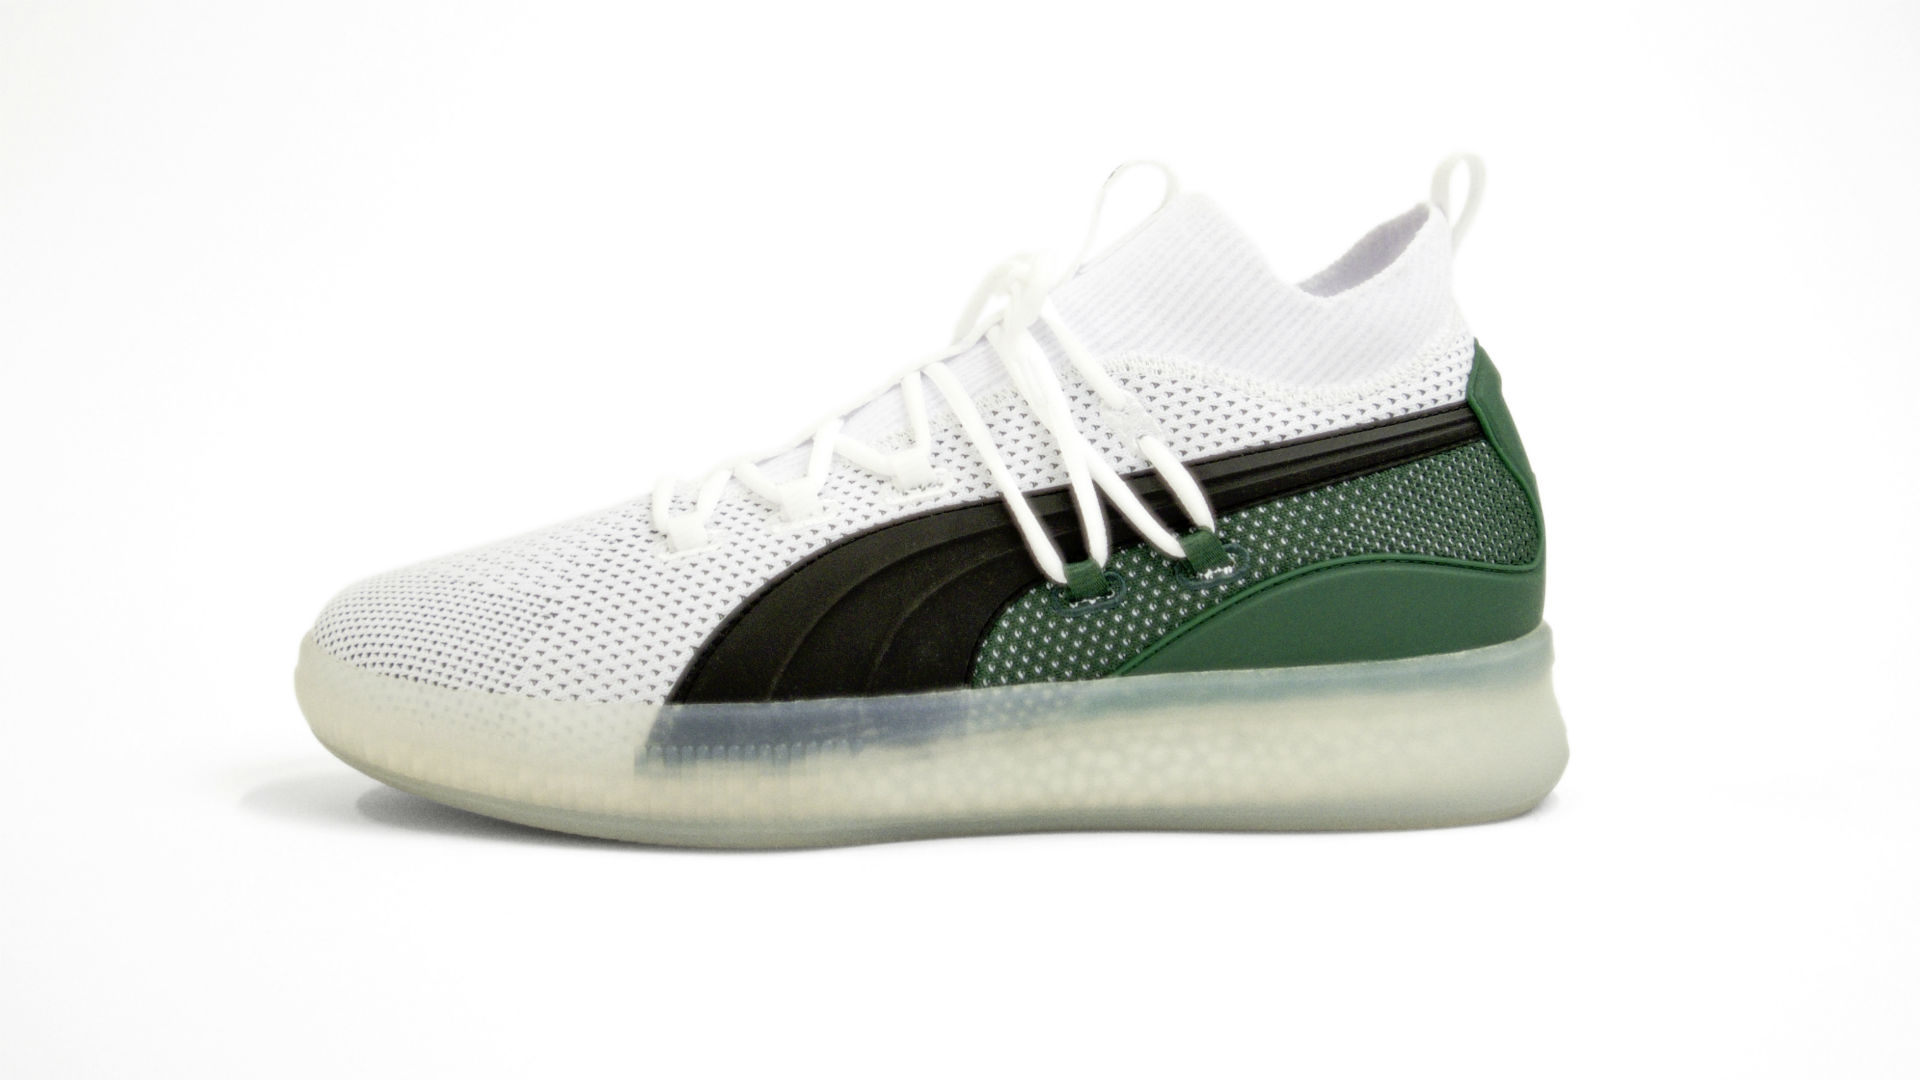 e8b1043104c PUMA releasing Player Exclusive  Clyde Court  shoes to be seen on the likes  of Terry Rozier